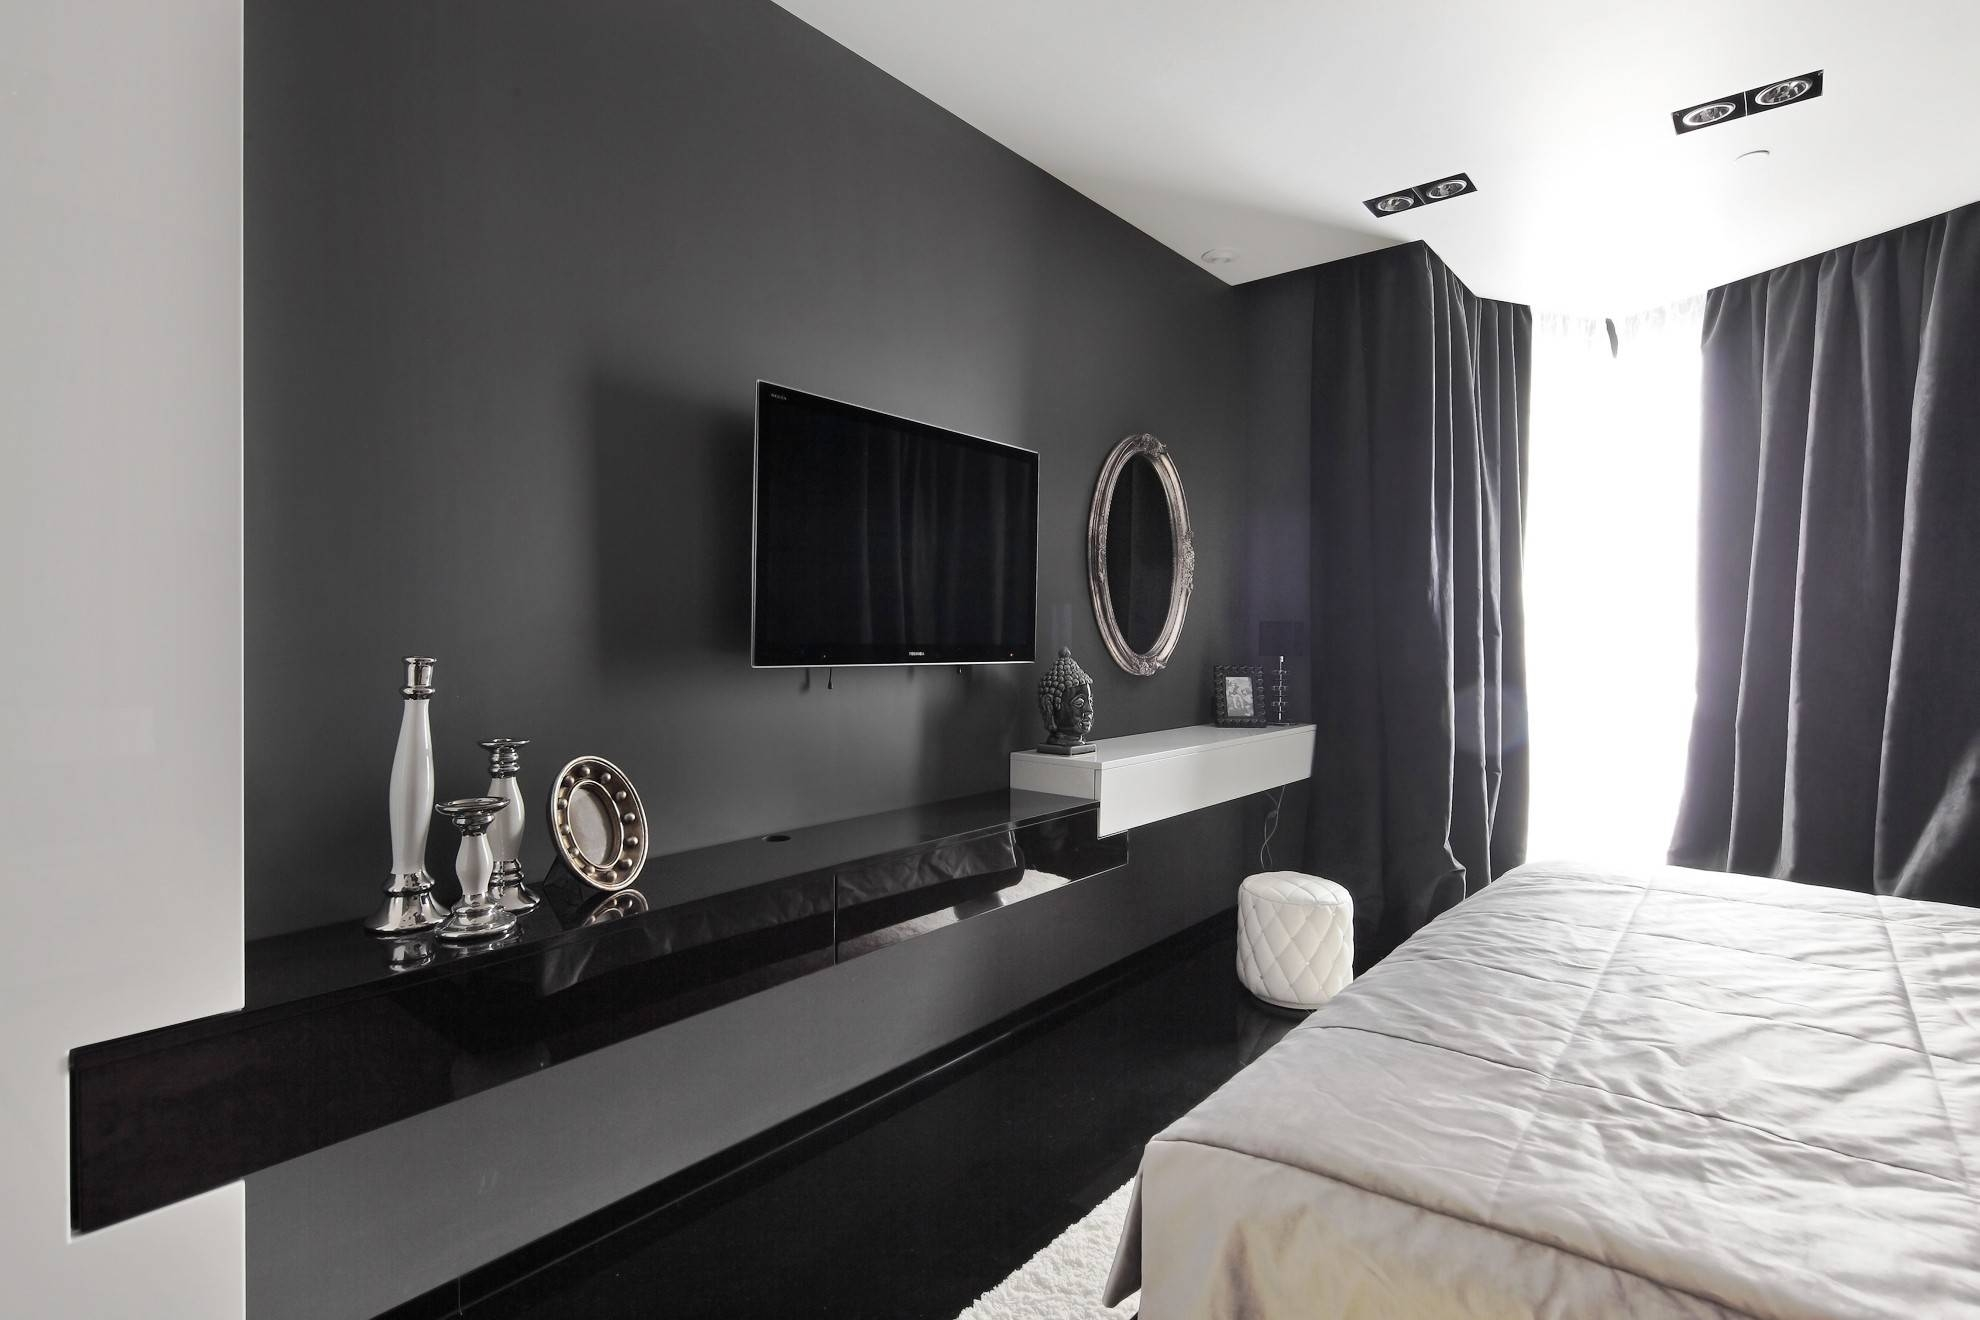 Bedroom: Tv Unit Ideas Wall Mounted Tv Unit Designs Tv Unit Design throughout Bedroom Tv Shelves (Image 8 of 15)